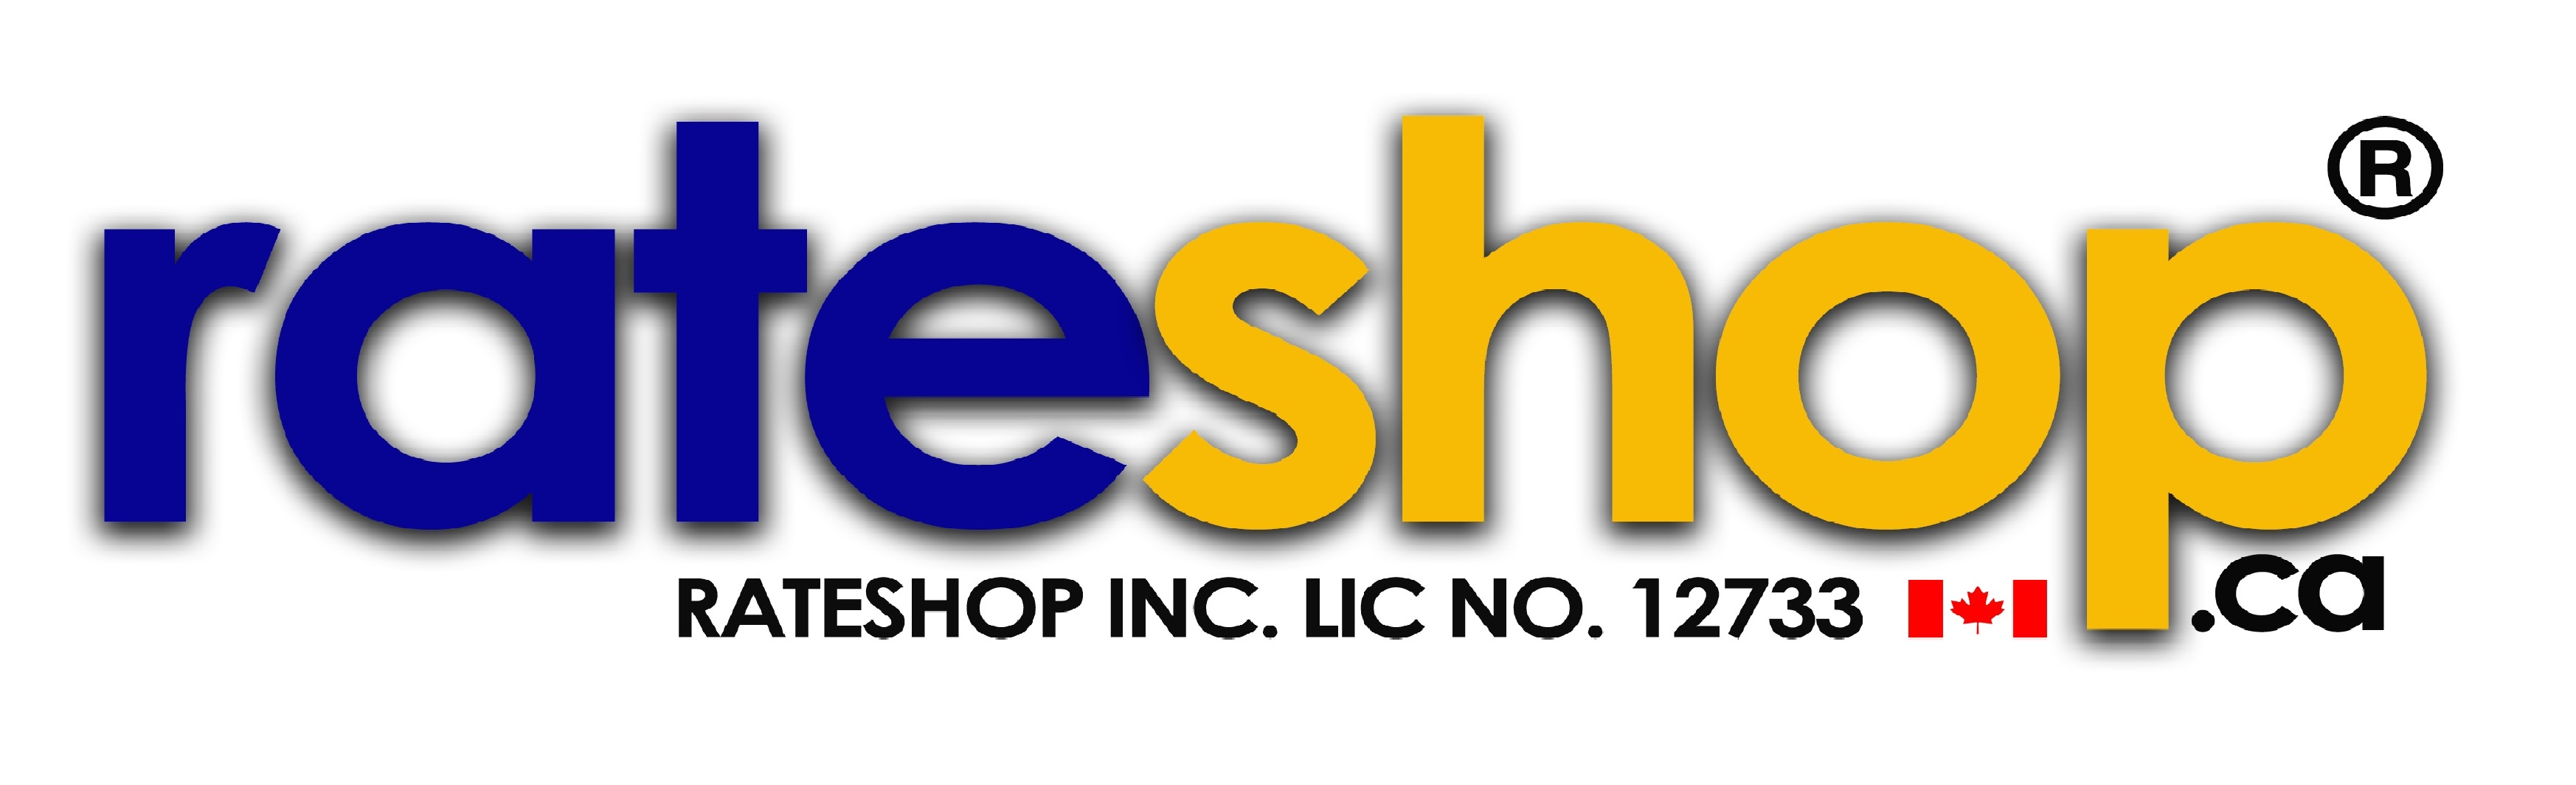 20200318101126-RATESHOP LOGO LARGE TRANSPARENT- feb 2018.jpg